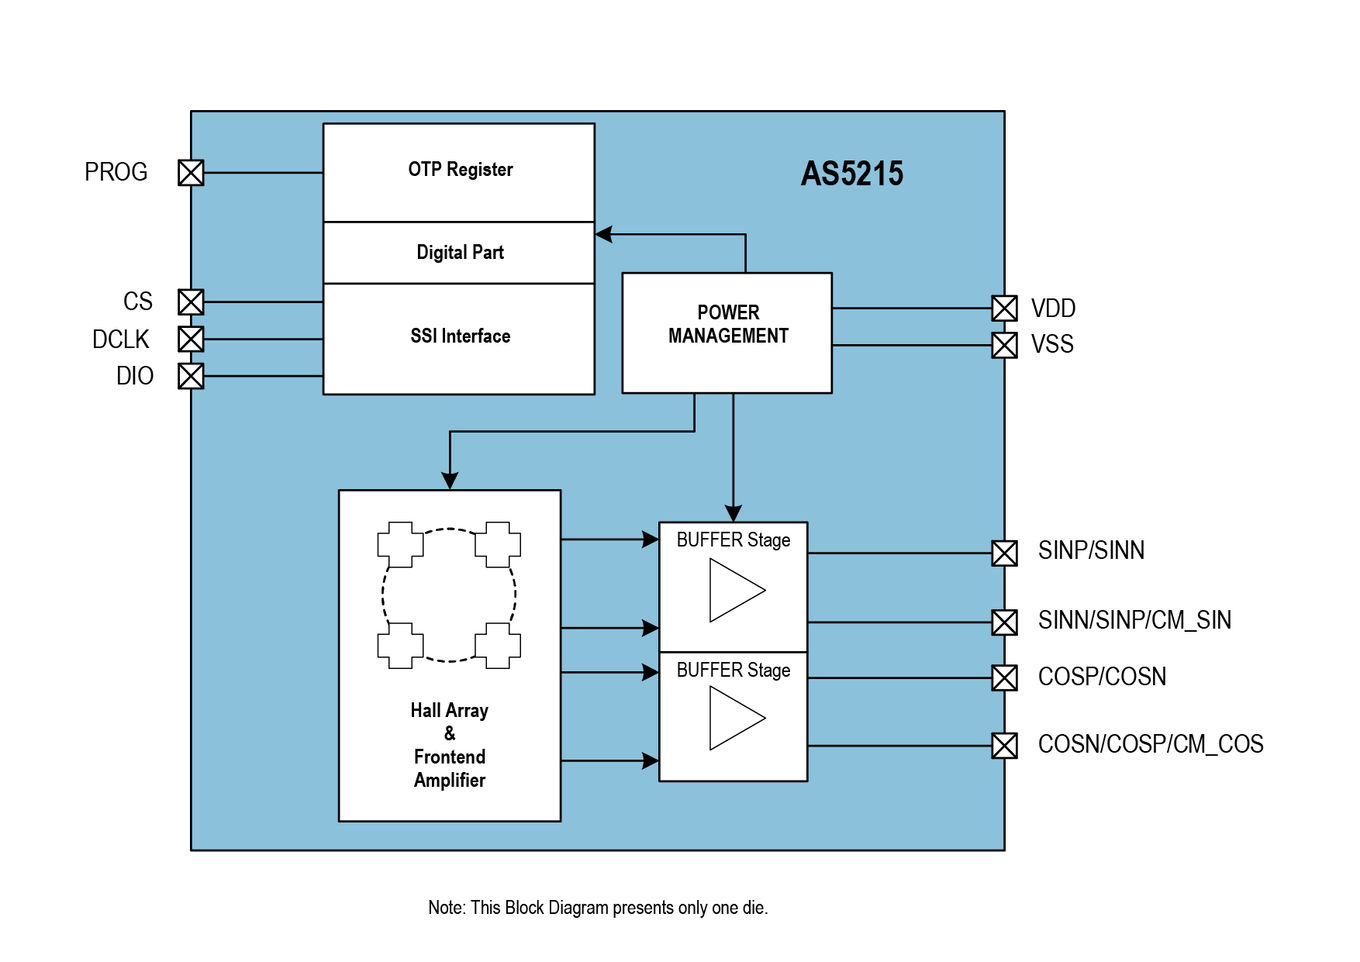 AS5215 Block Diagram